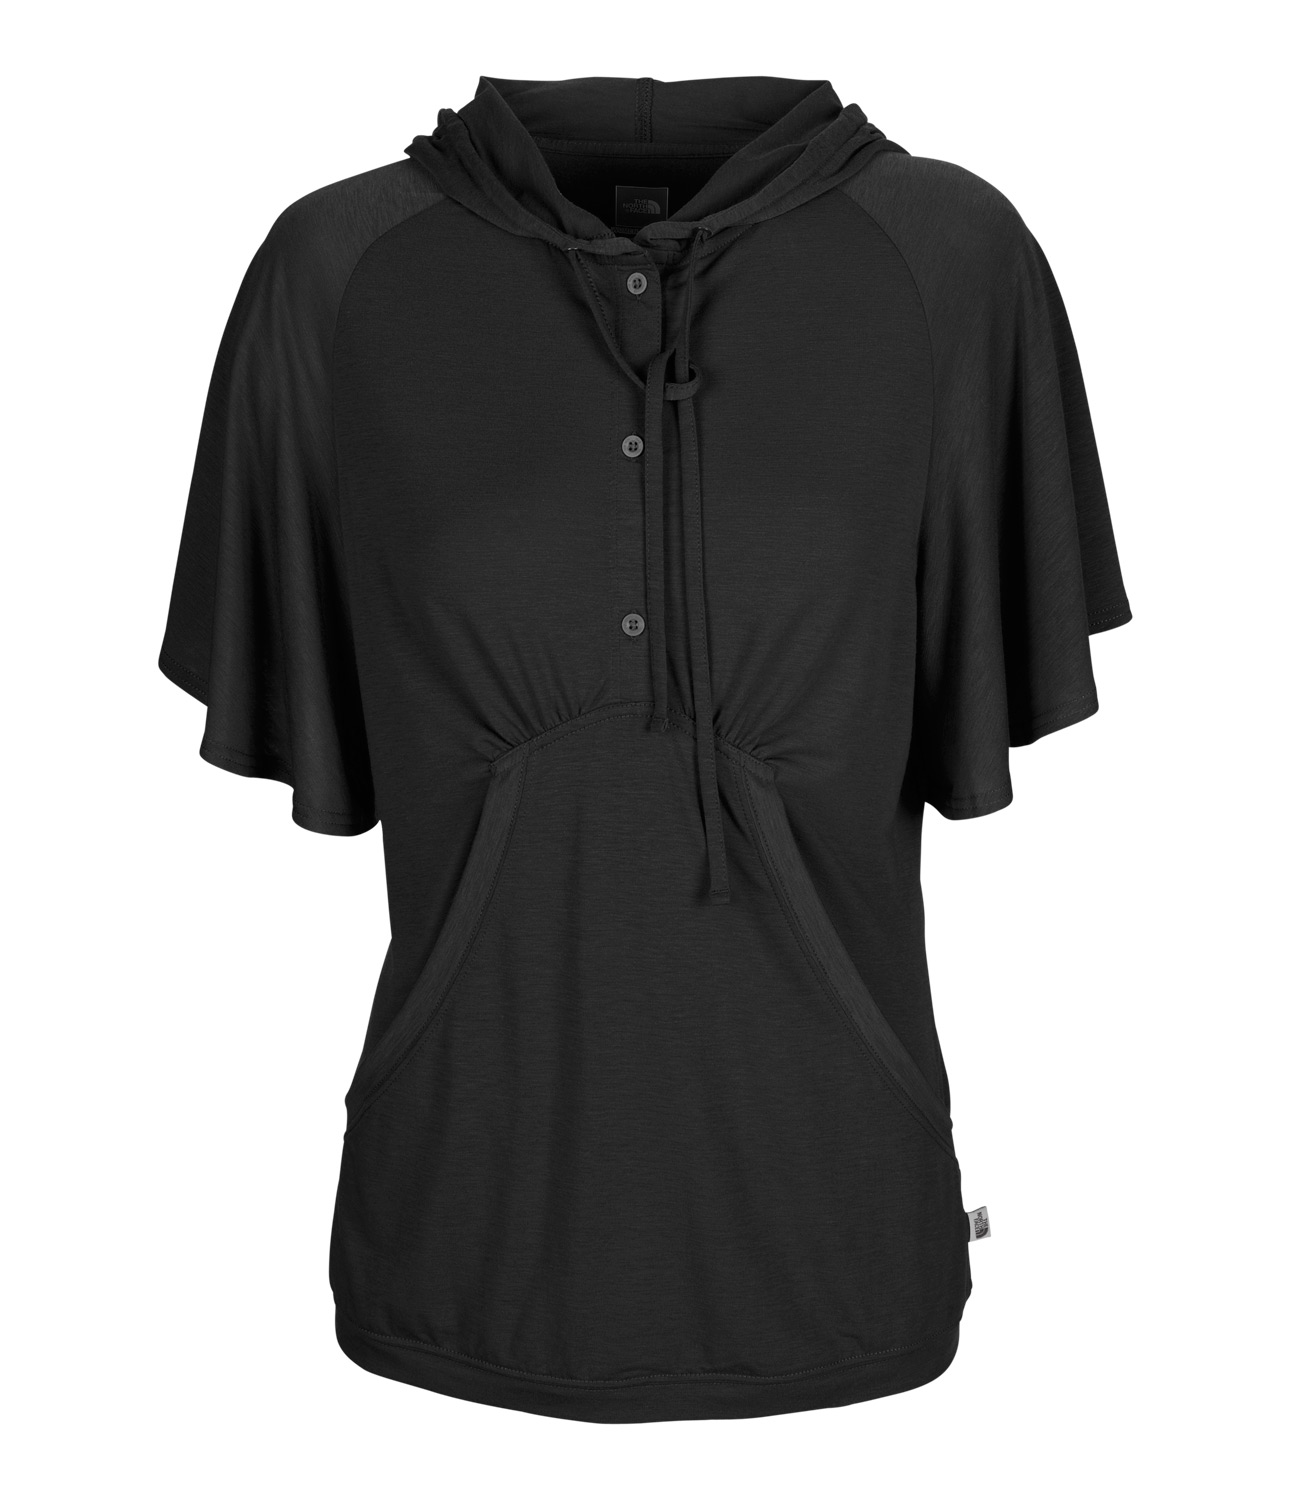 Key Features of The North Face Crystal Travel Shirt: Drirelease technology for quicker drying FreshGuard to help control odor UPF 30 sun protection - $28.95